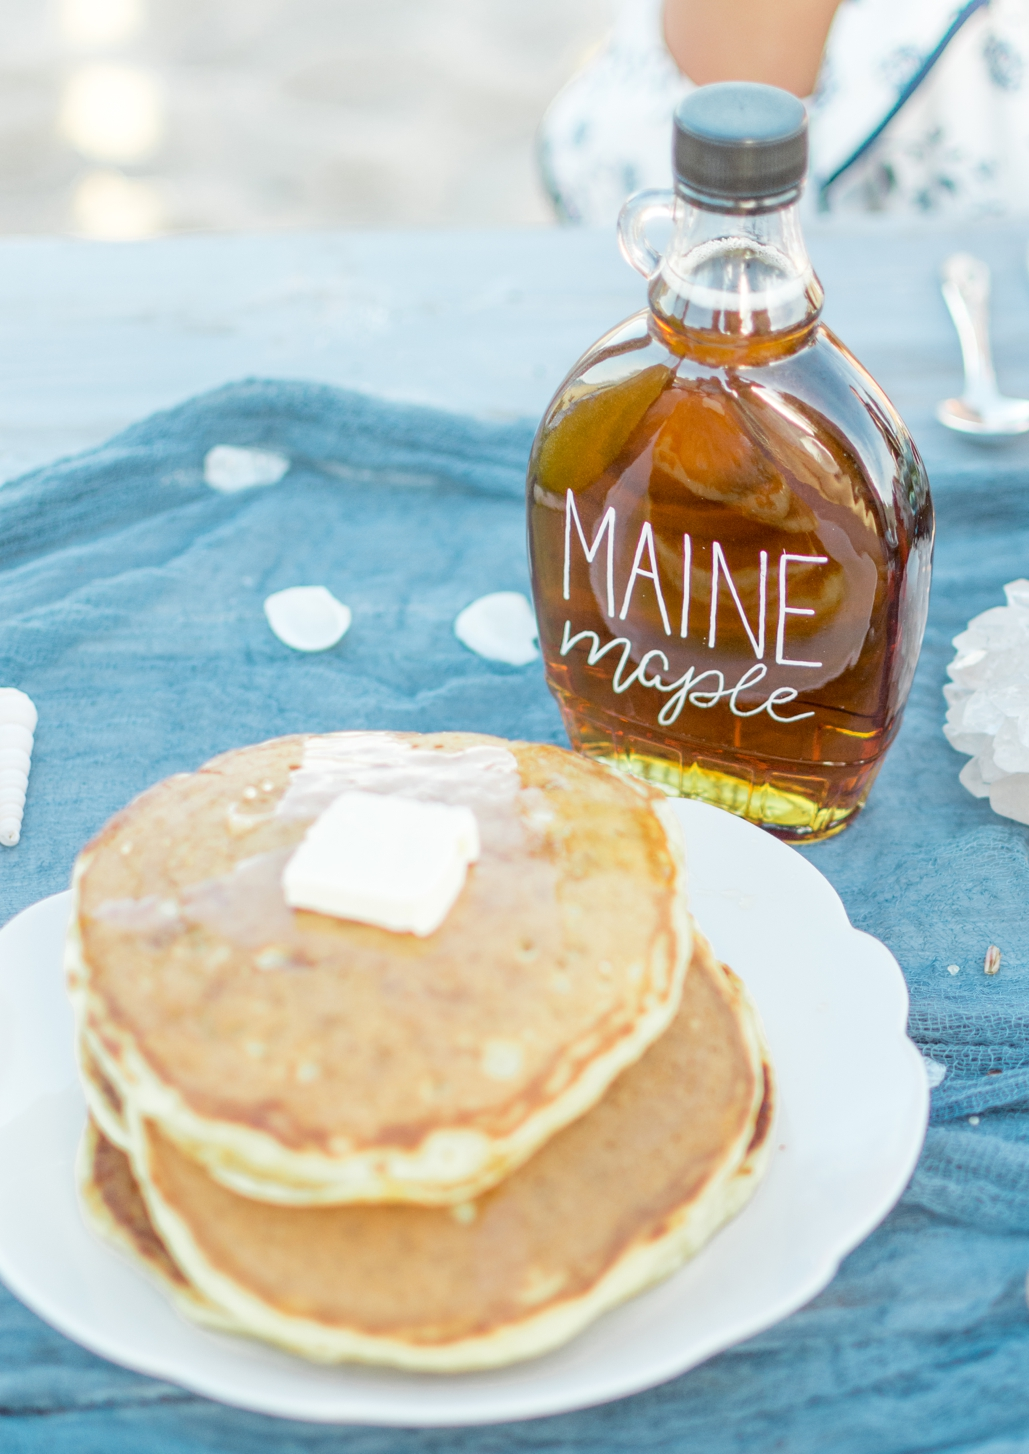 custom maple syrup wedding favors, Maine and Vermont wedding inspiration, custom lettered and calligraphy table details